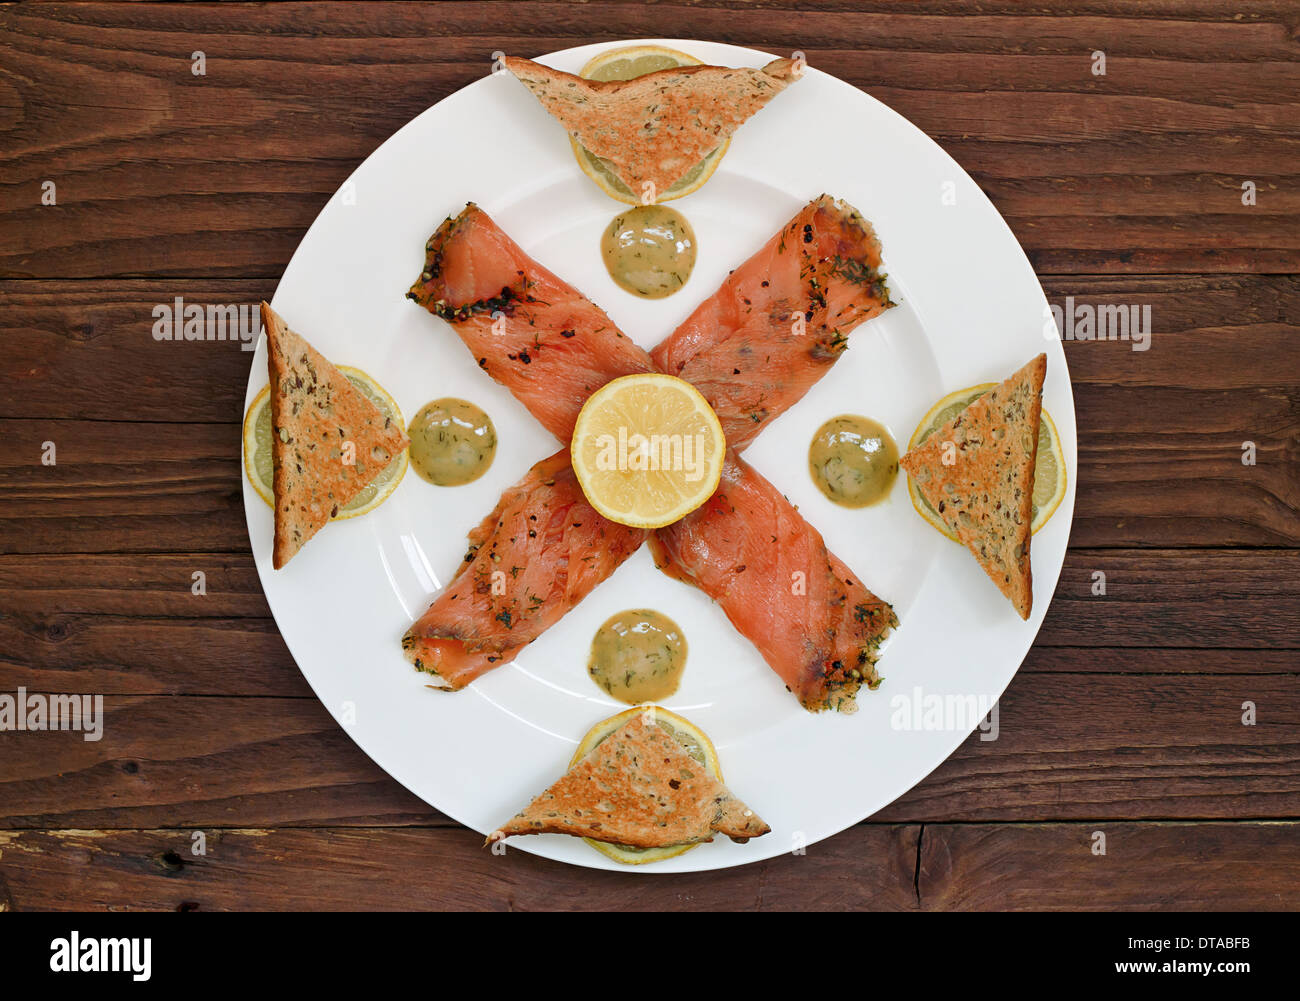 Smoked salmon starter arranged on a plate with a table top background - Stock Image